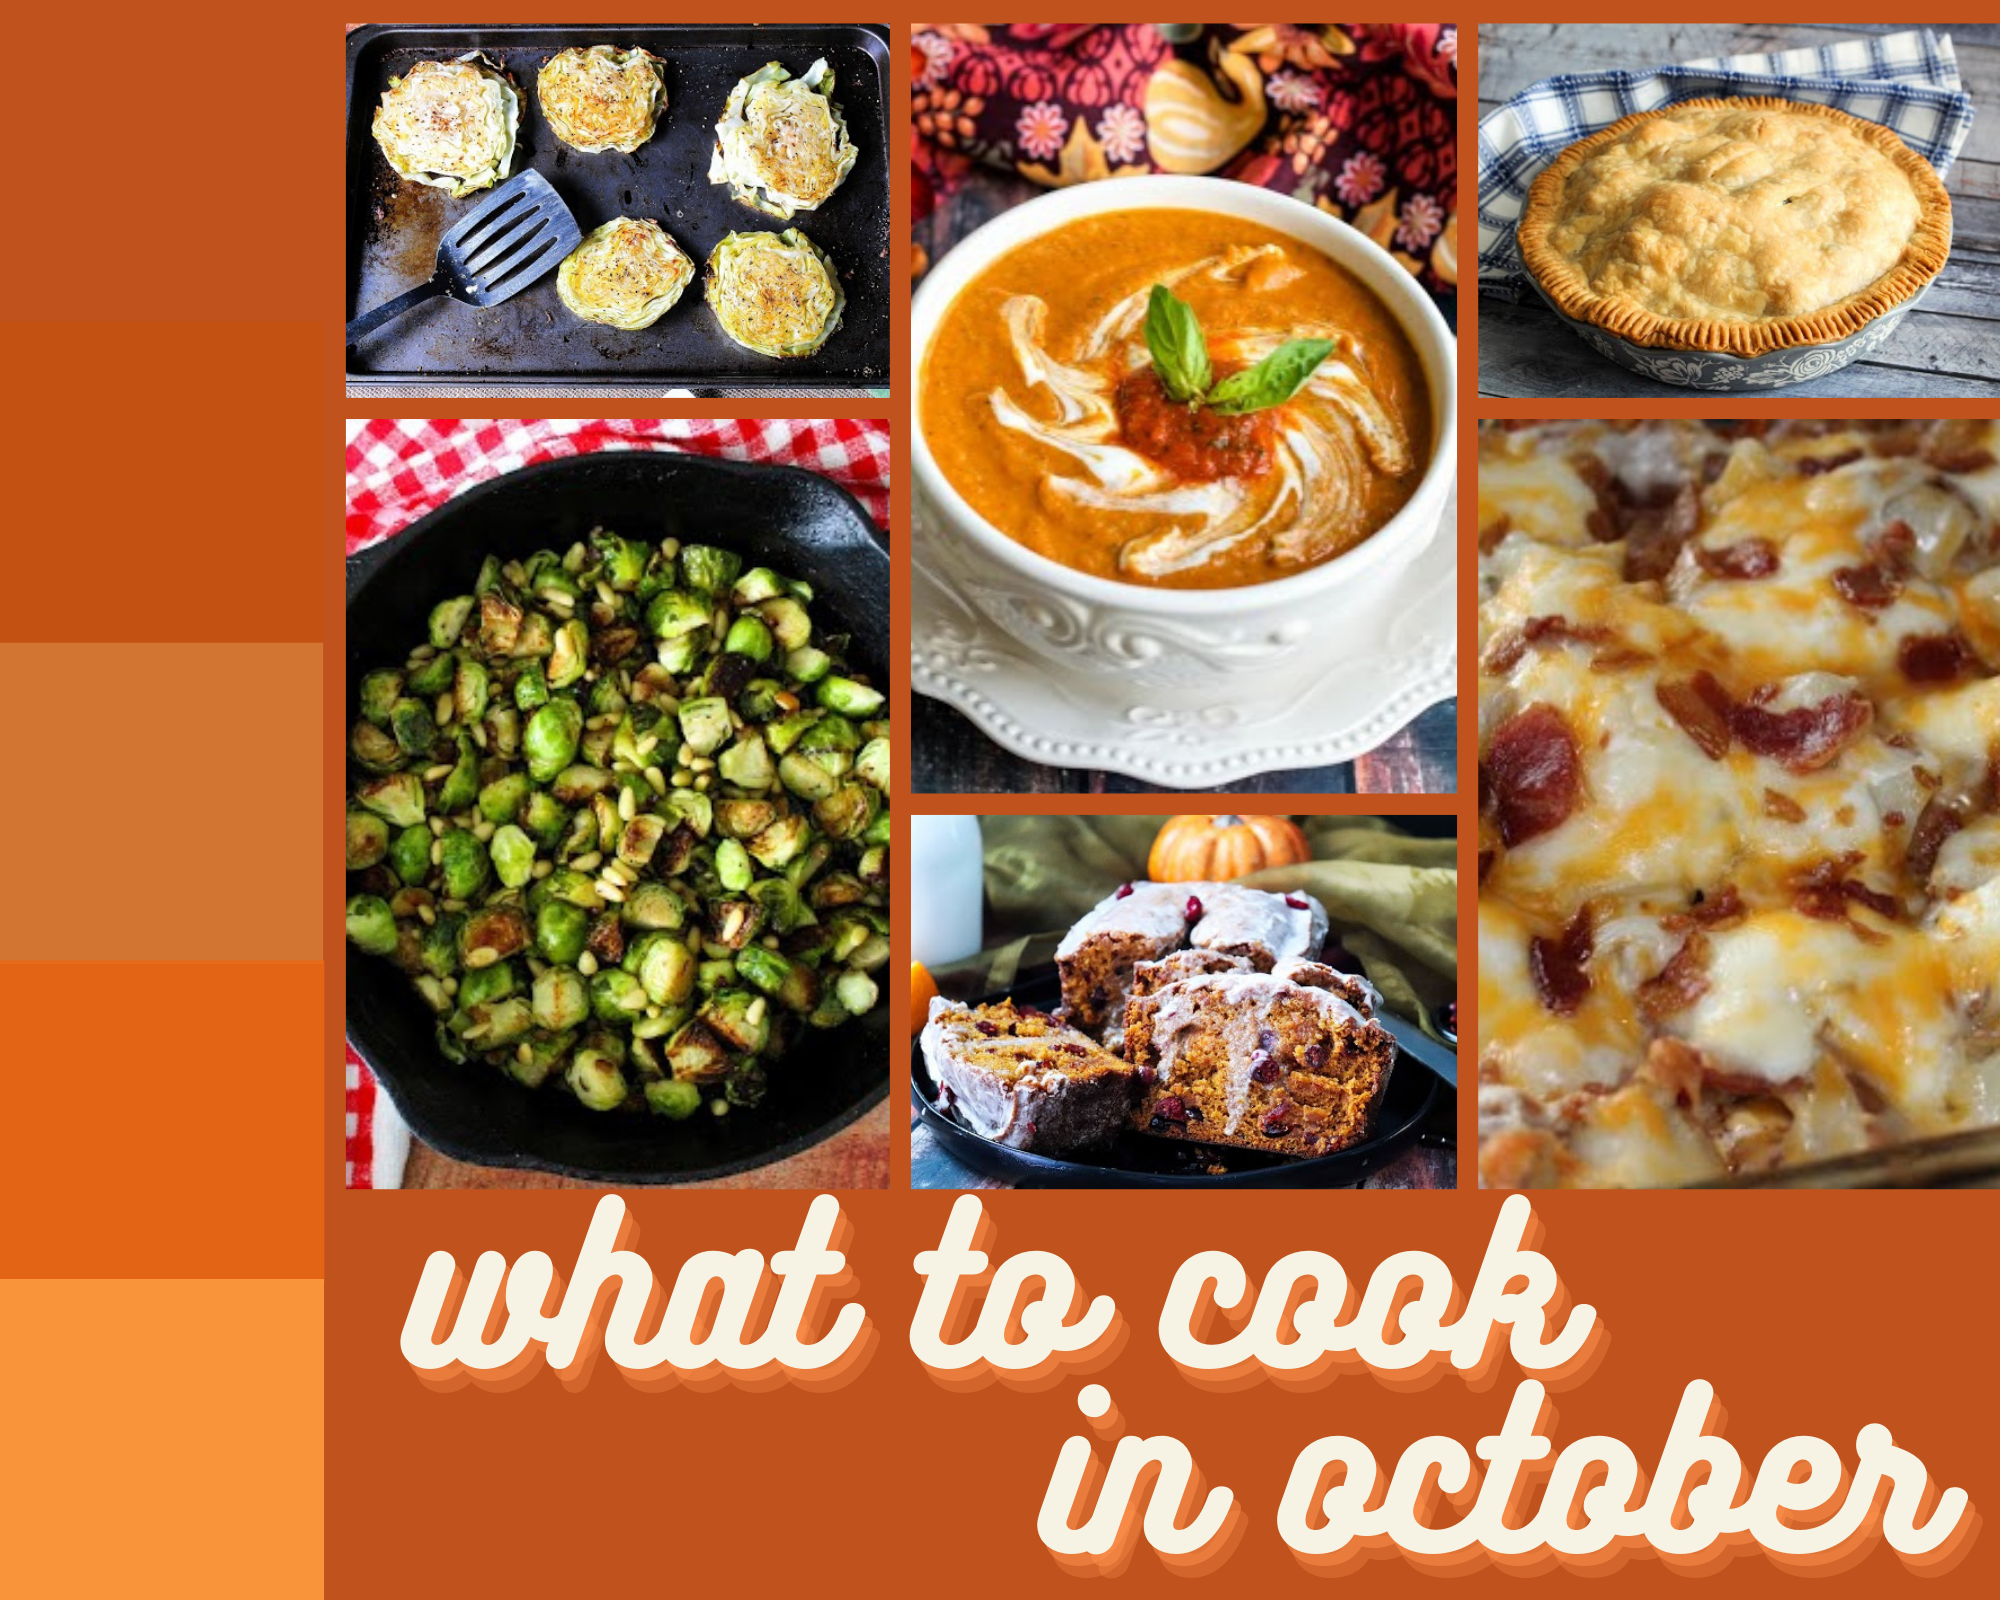 brussels sprouts, cabbage steaks, red pepper soup, vegetable pie and more fall recipes